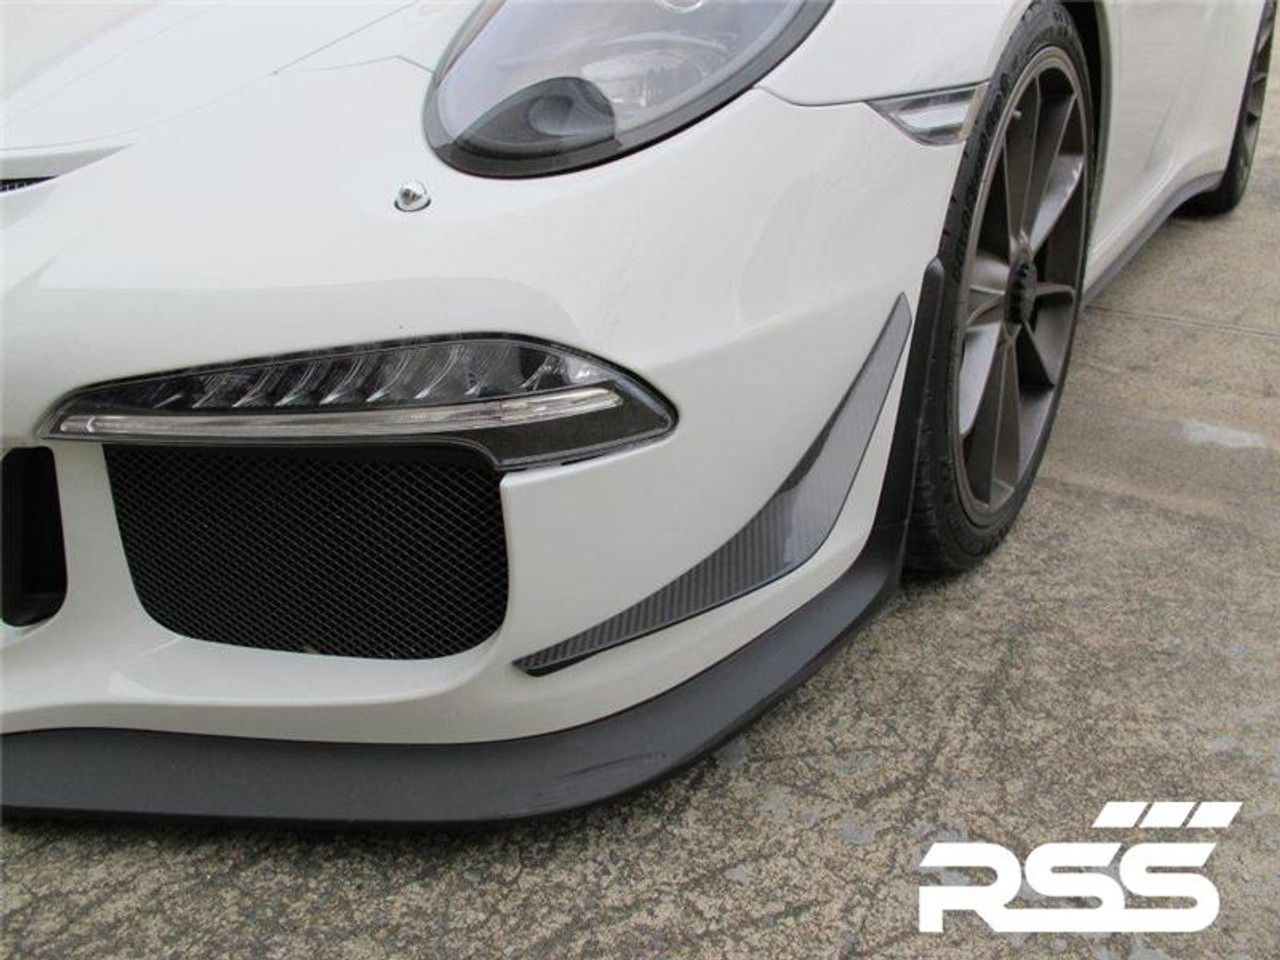 RSS - CarbonAero Kit # 240 for 991.1 GT3 (Does not fit RS). Includes FRONT CANARDS / DIVE PLANES, REAR WING GURNEY FLAP AND REAR ENGINE COVER GURNEY FLAP. Aesthetically pleasing and aggressive in appearance, Canards and Gurney Flaps have a functional purpose with direct benefits on street and motorsports applications. Designed with the latest CAD technology, constructed to exacting standards with pre-preg 2×2 Carbon Fibre Twill, finished in a high gloss clear coat with UV inhibitors, adhere with 3M VHB tape for easy application and removal, and are 100% Manufactured in USA. Components are are of the highest quality and are guaranteed to fit.• Produce down force by deflecting oncoming air upward resulting in a net down force on the front and rear of the vehicle • Can direct air towards other important aero devices or cooling vents • Direct air away from the wheels and tires thereby reducing drag, turbulence and lift • Can be used to balance and tune front to rear down force levels